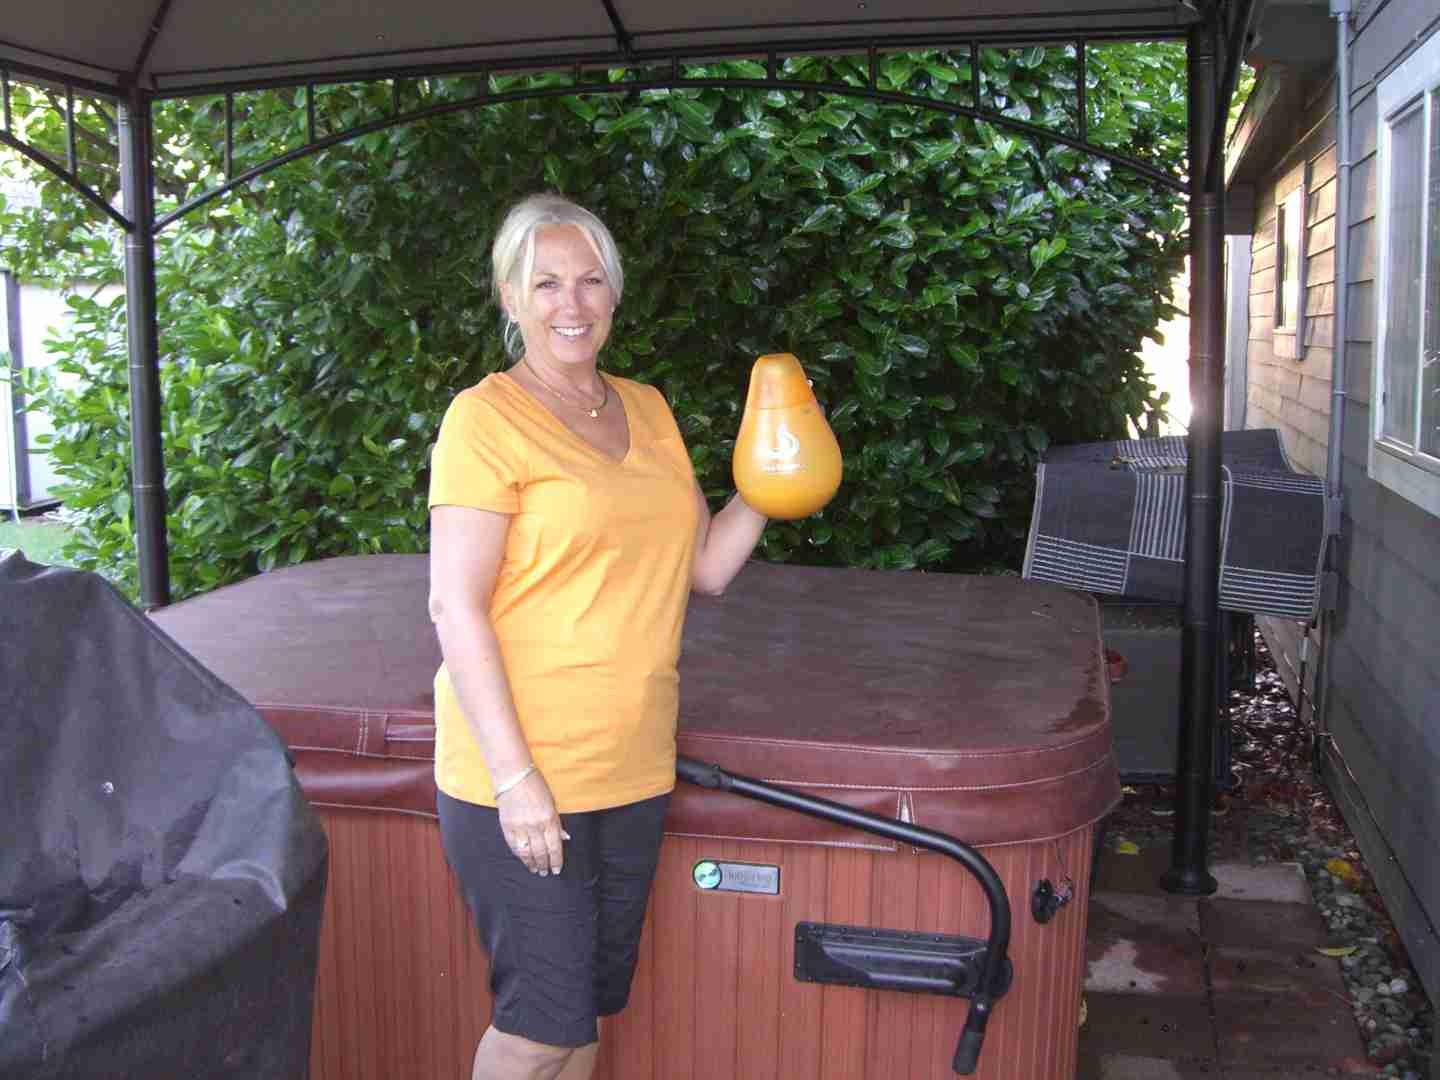 Third Time's A Charm: Owners of Their Third Hot Tub Find It Easiest to Care For